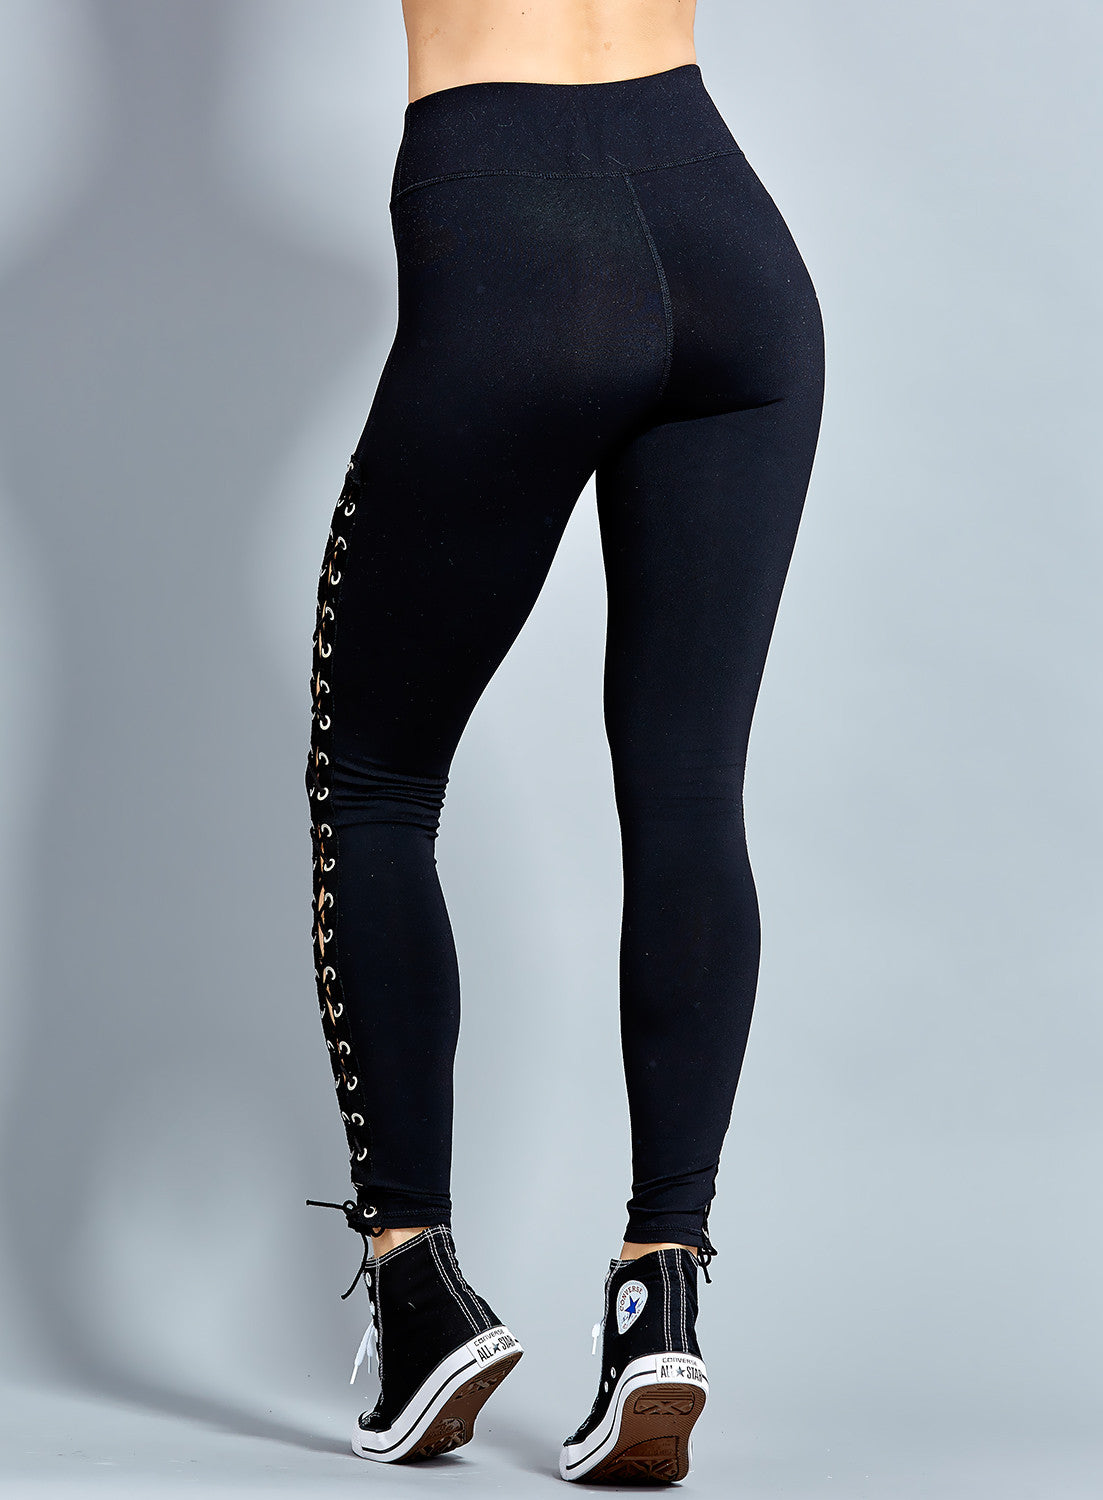 Bella Side Lace UP (Black) Leggings High Quality